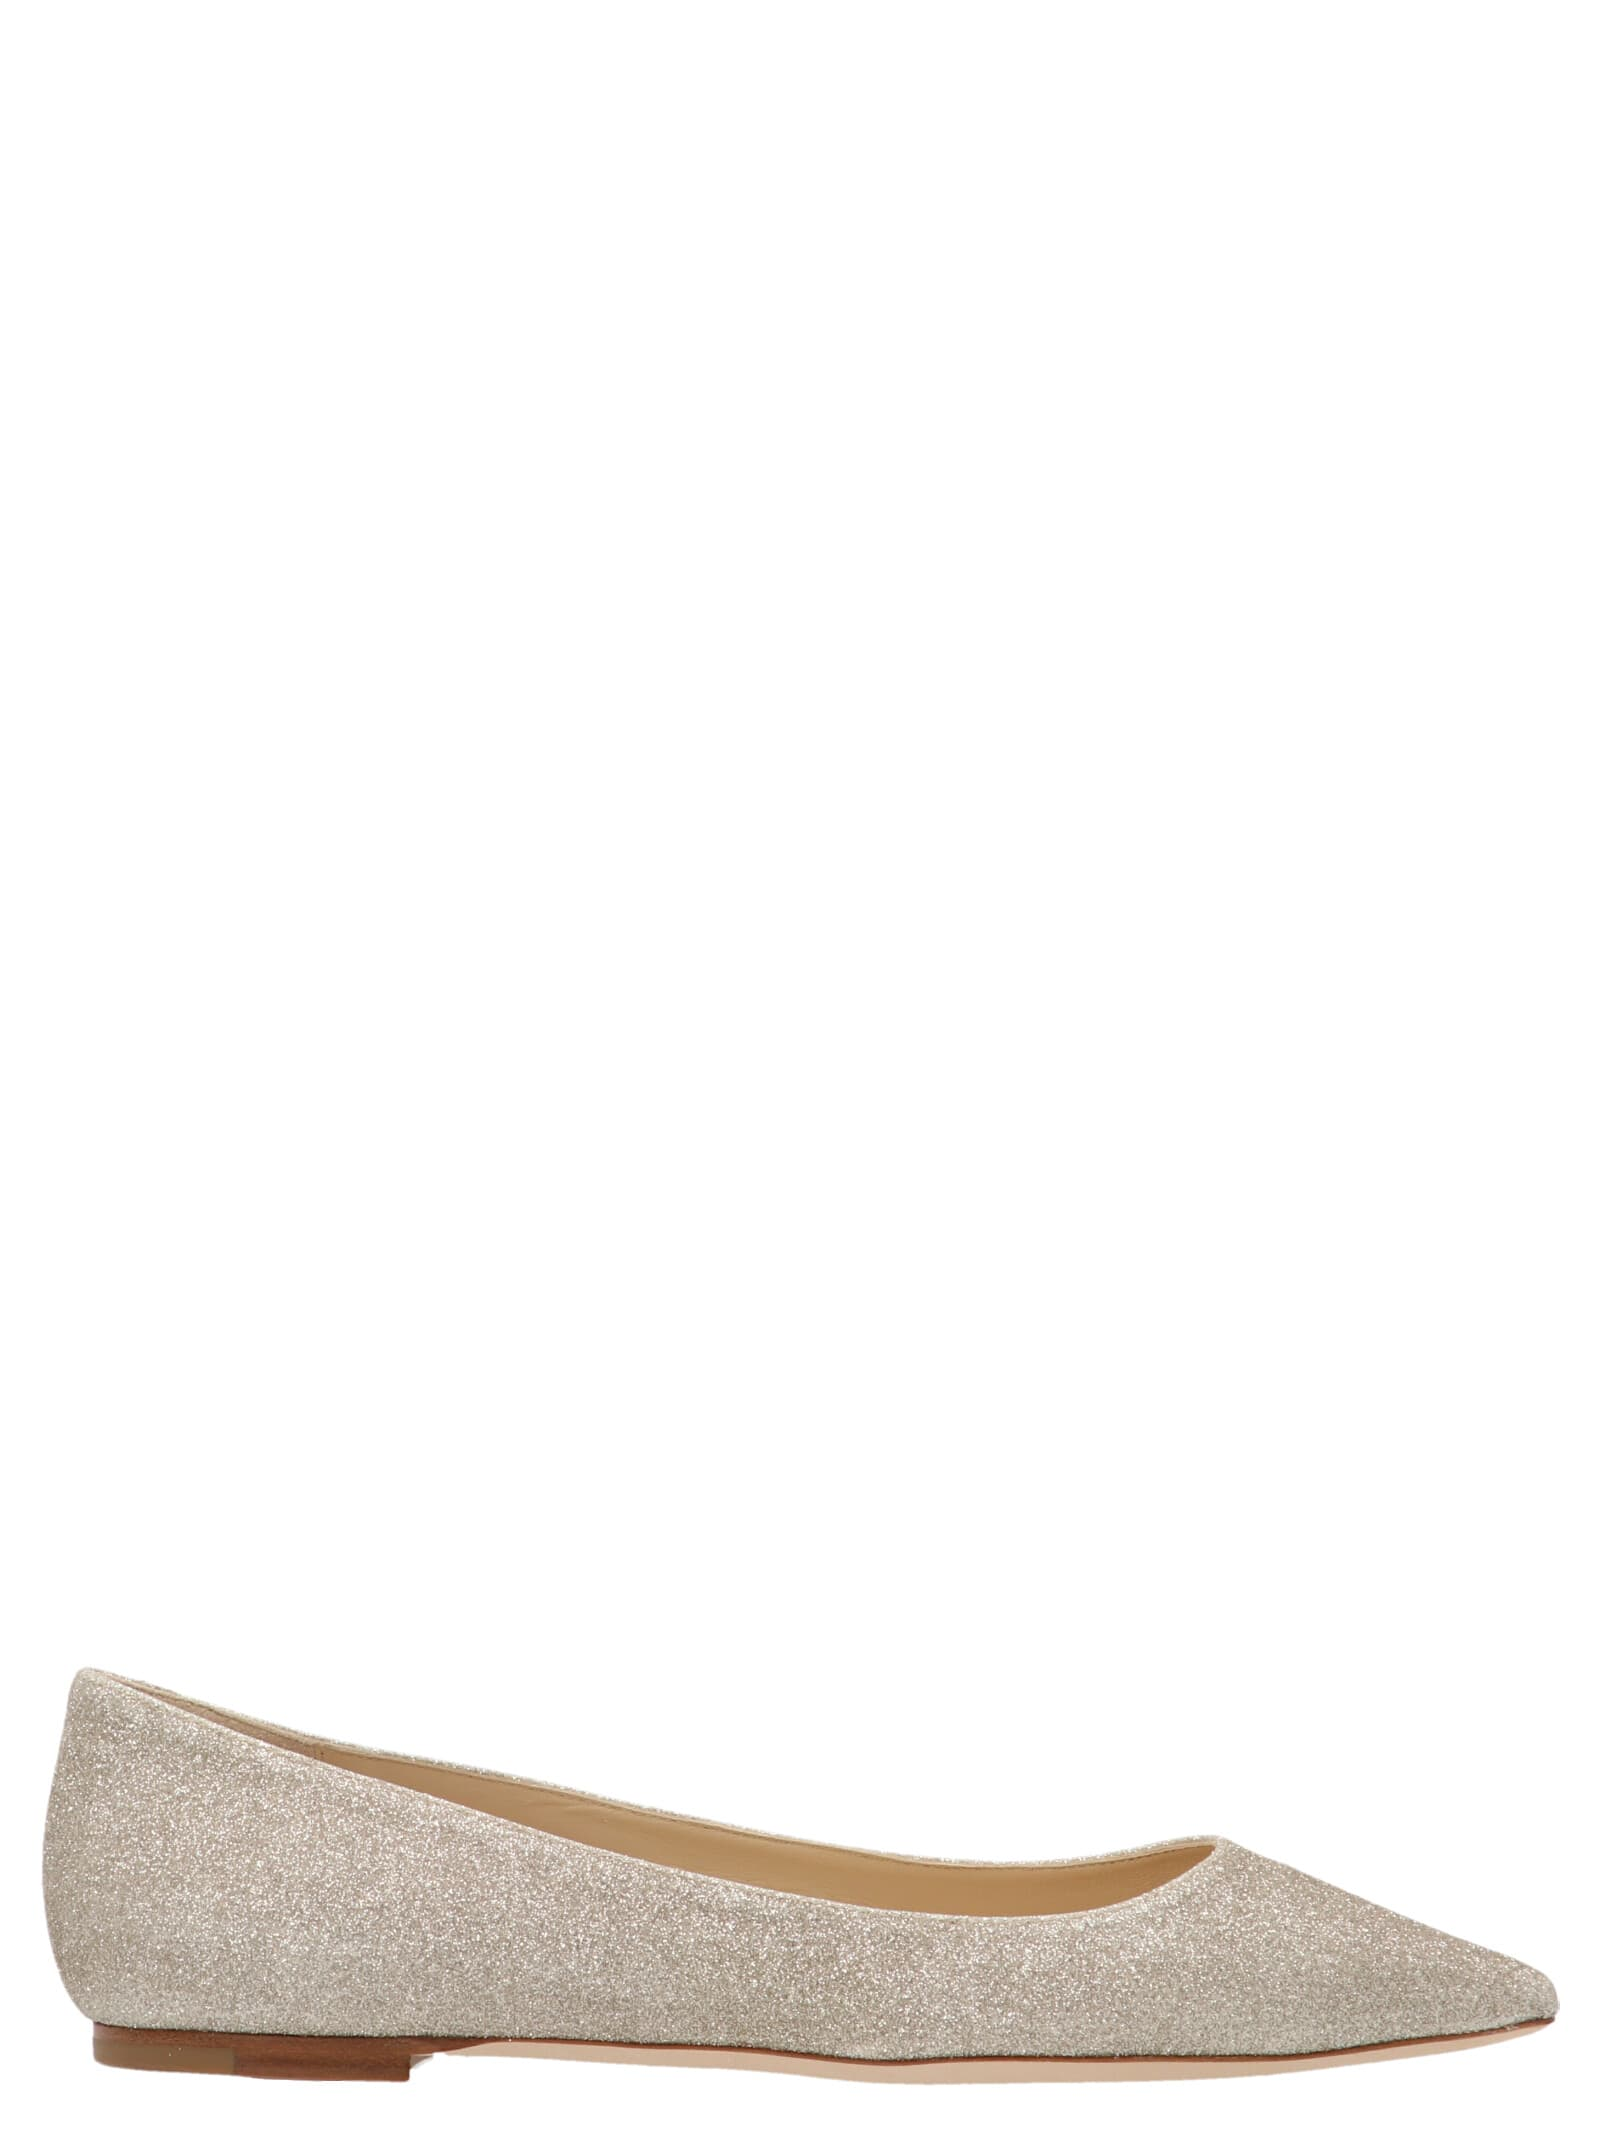 Buy Jimmy Choo romy Shoes online, shop Jimmy Choo shoes with free shipping